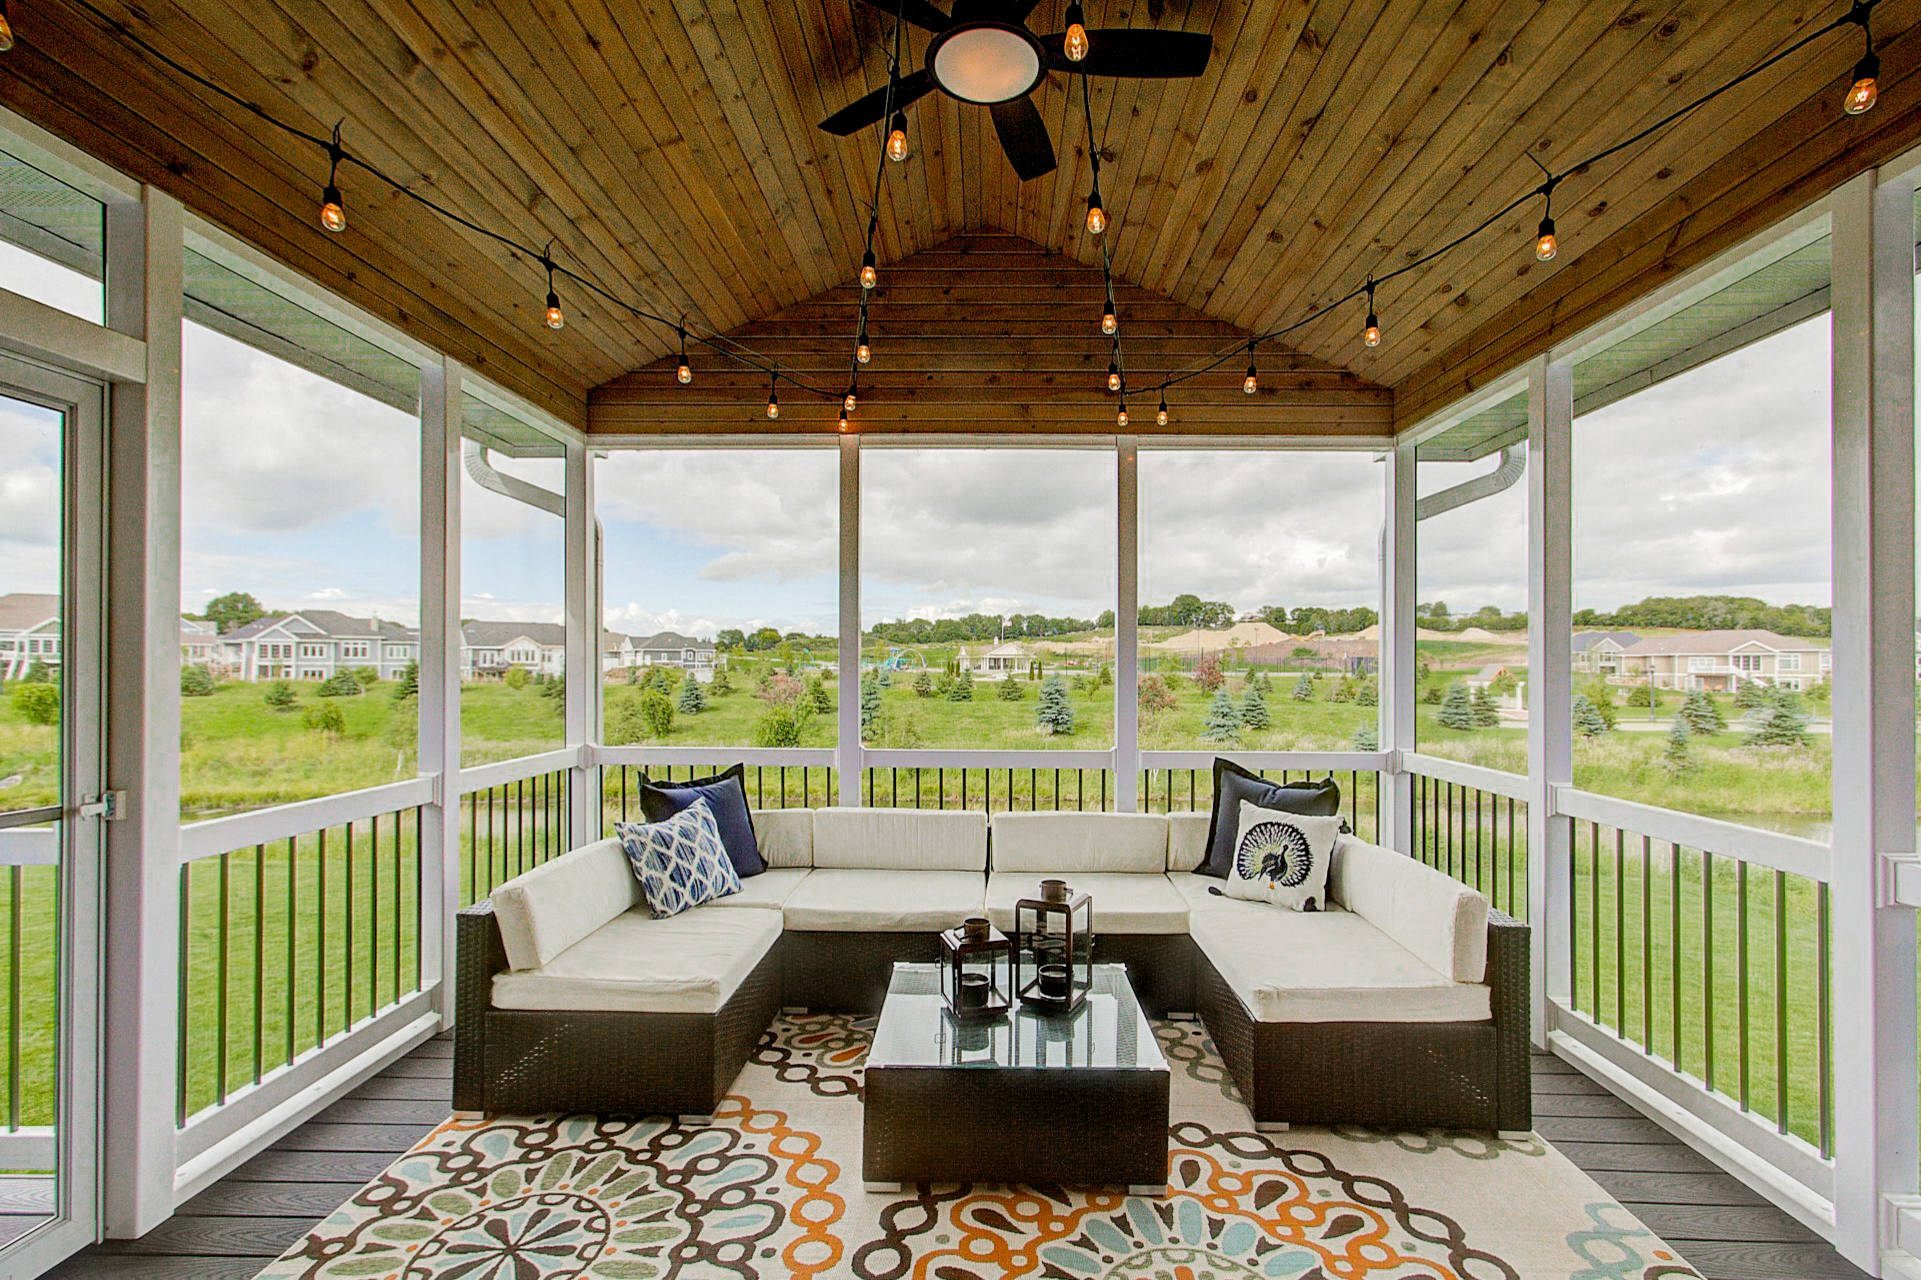 75 Beautiful Screened In Porch Pictures Ideas May 2021 Houzz